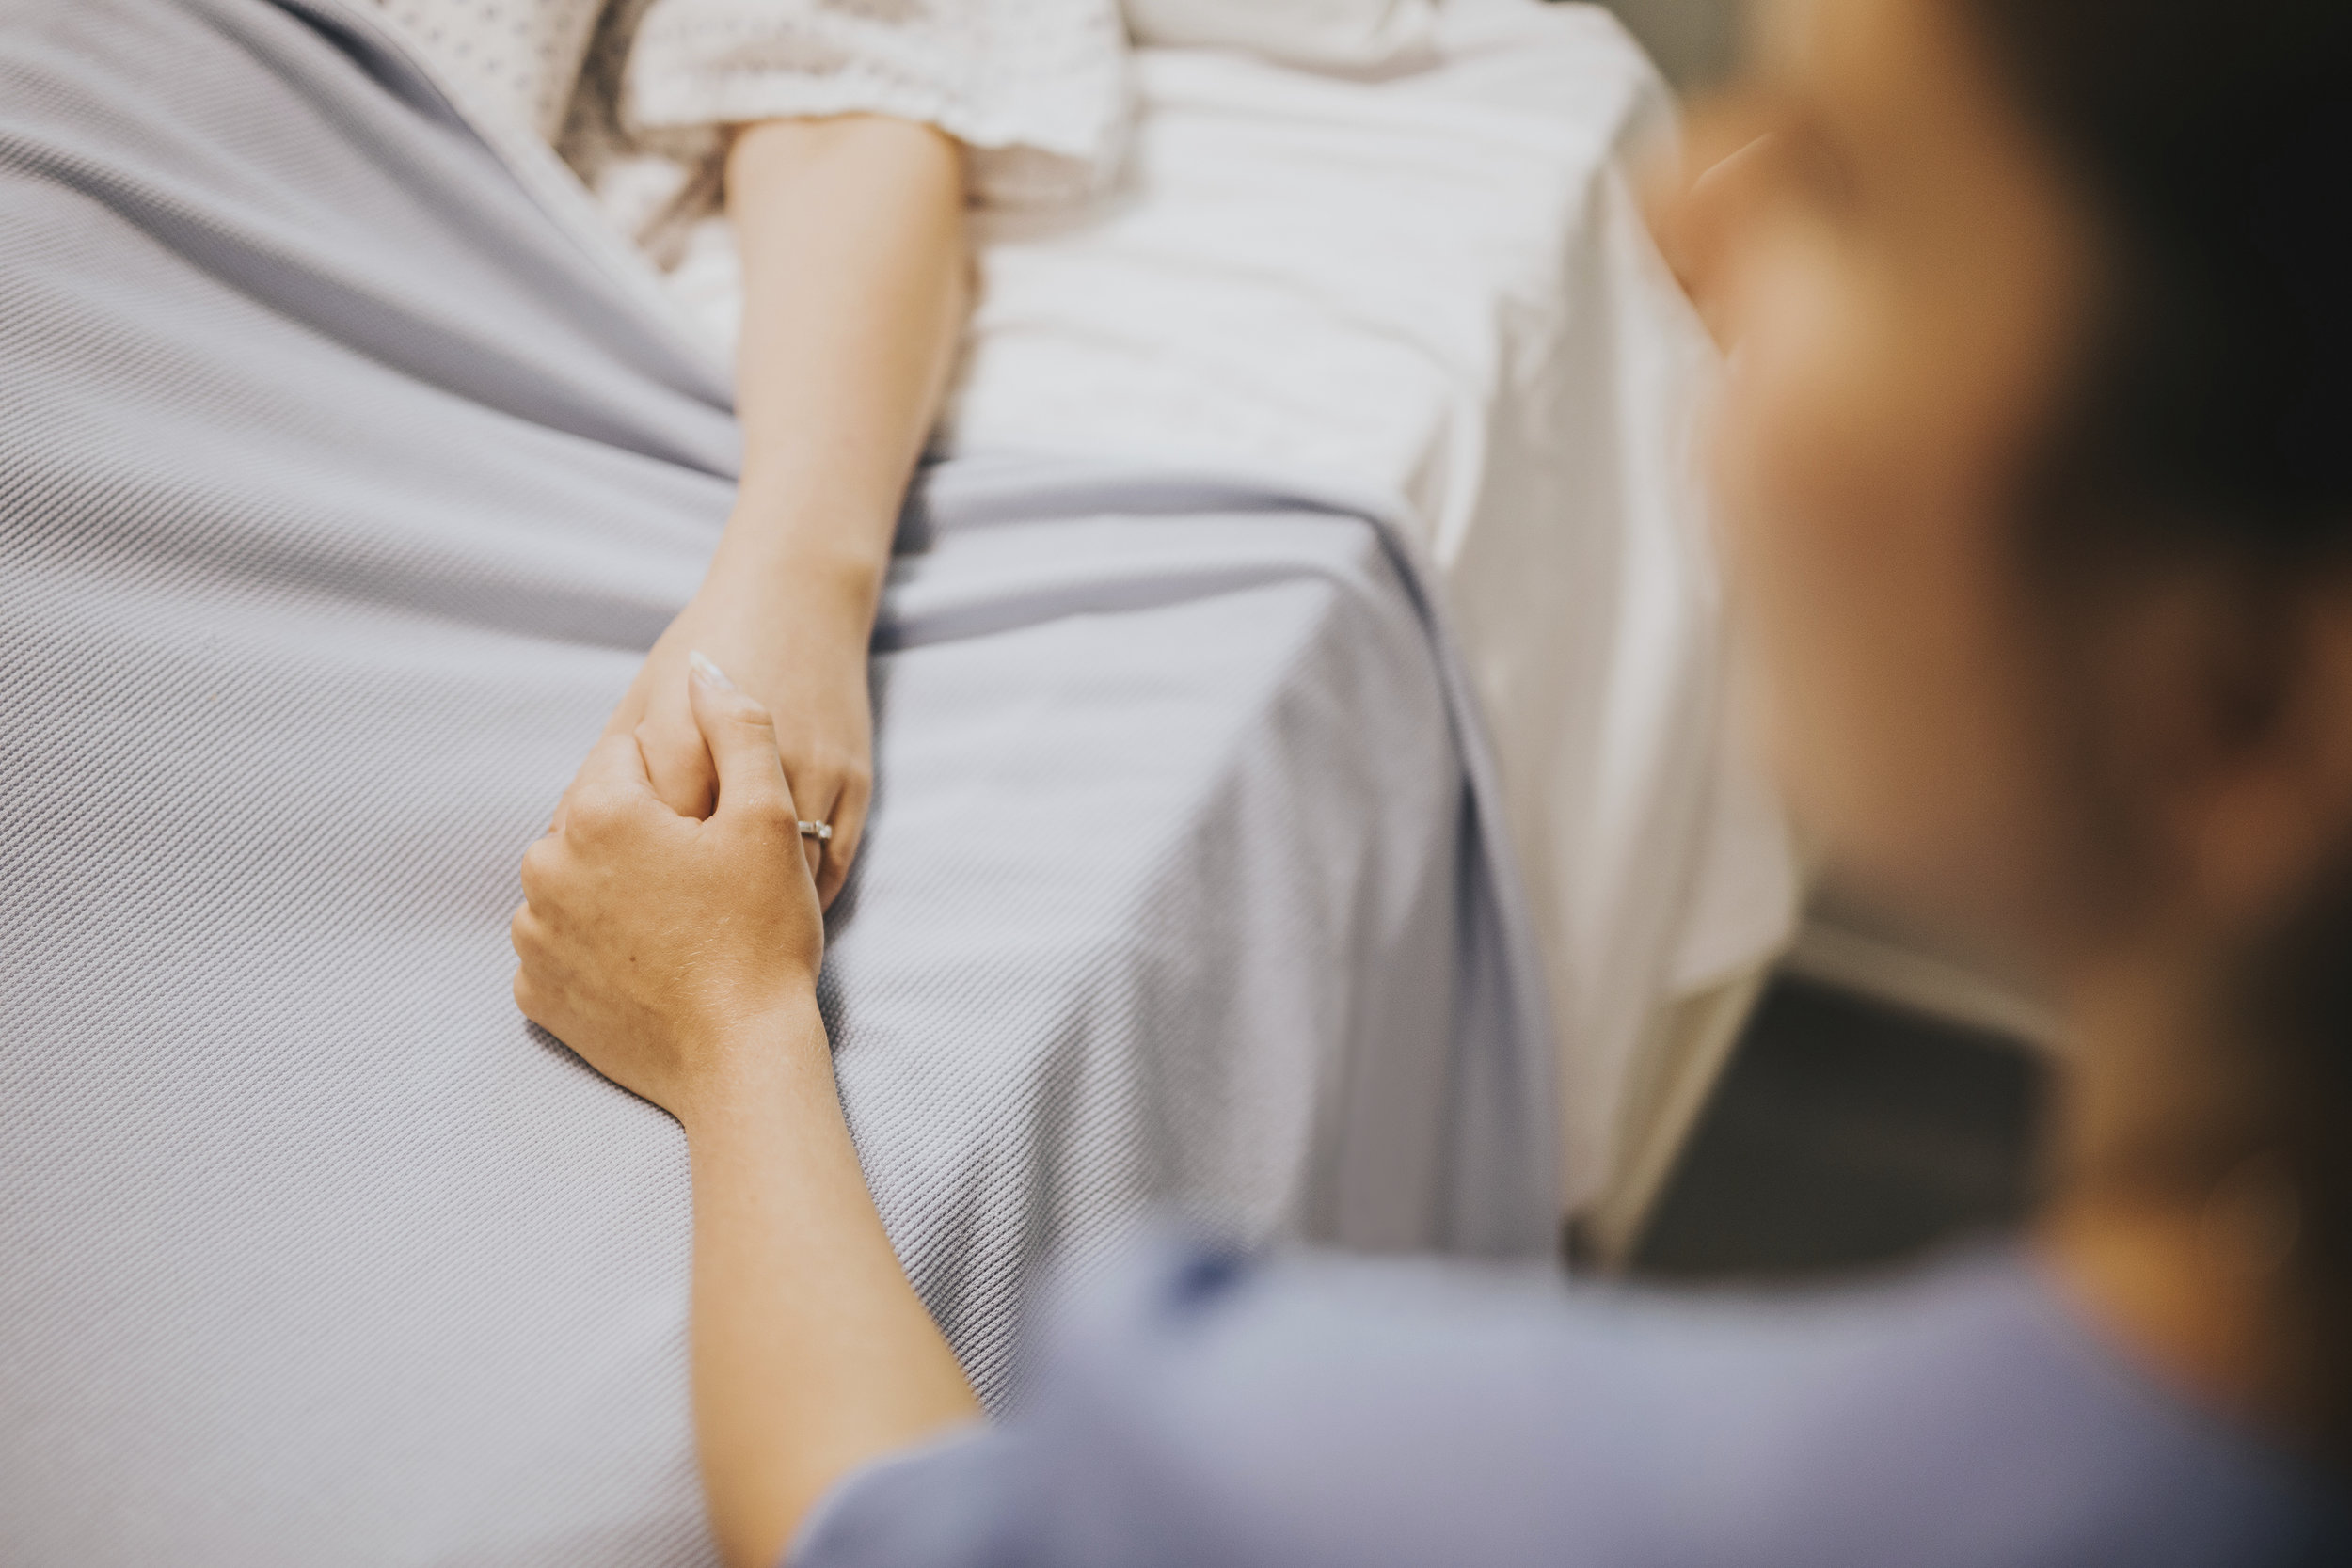 Patients value continuity relationships with students, akin to that described between patients and their physicians. Patients described a variety of ways in which students enhanced their care and assumed a physician-like role. These patient perceptions support the concept of mutually beneficial relationships between students and patients. - (Poncelet et al., 2013)